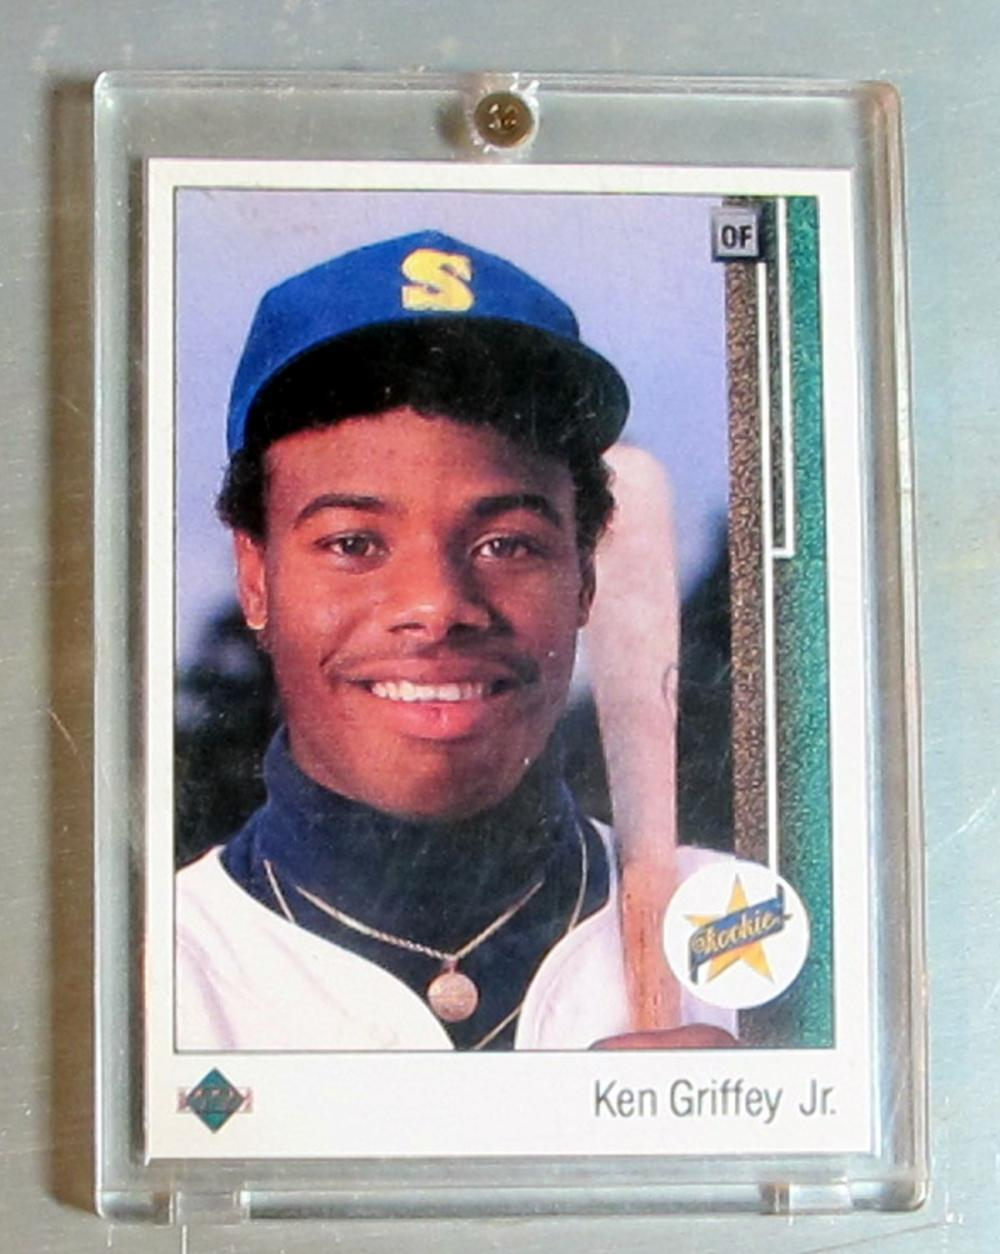 1989 UPPER DECK BASEBALL CARD 1 HOF KEN GRIFFEY JR. SEATTLE MARINERS NICE NRMT